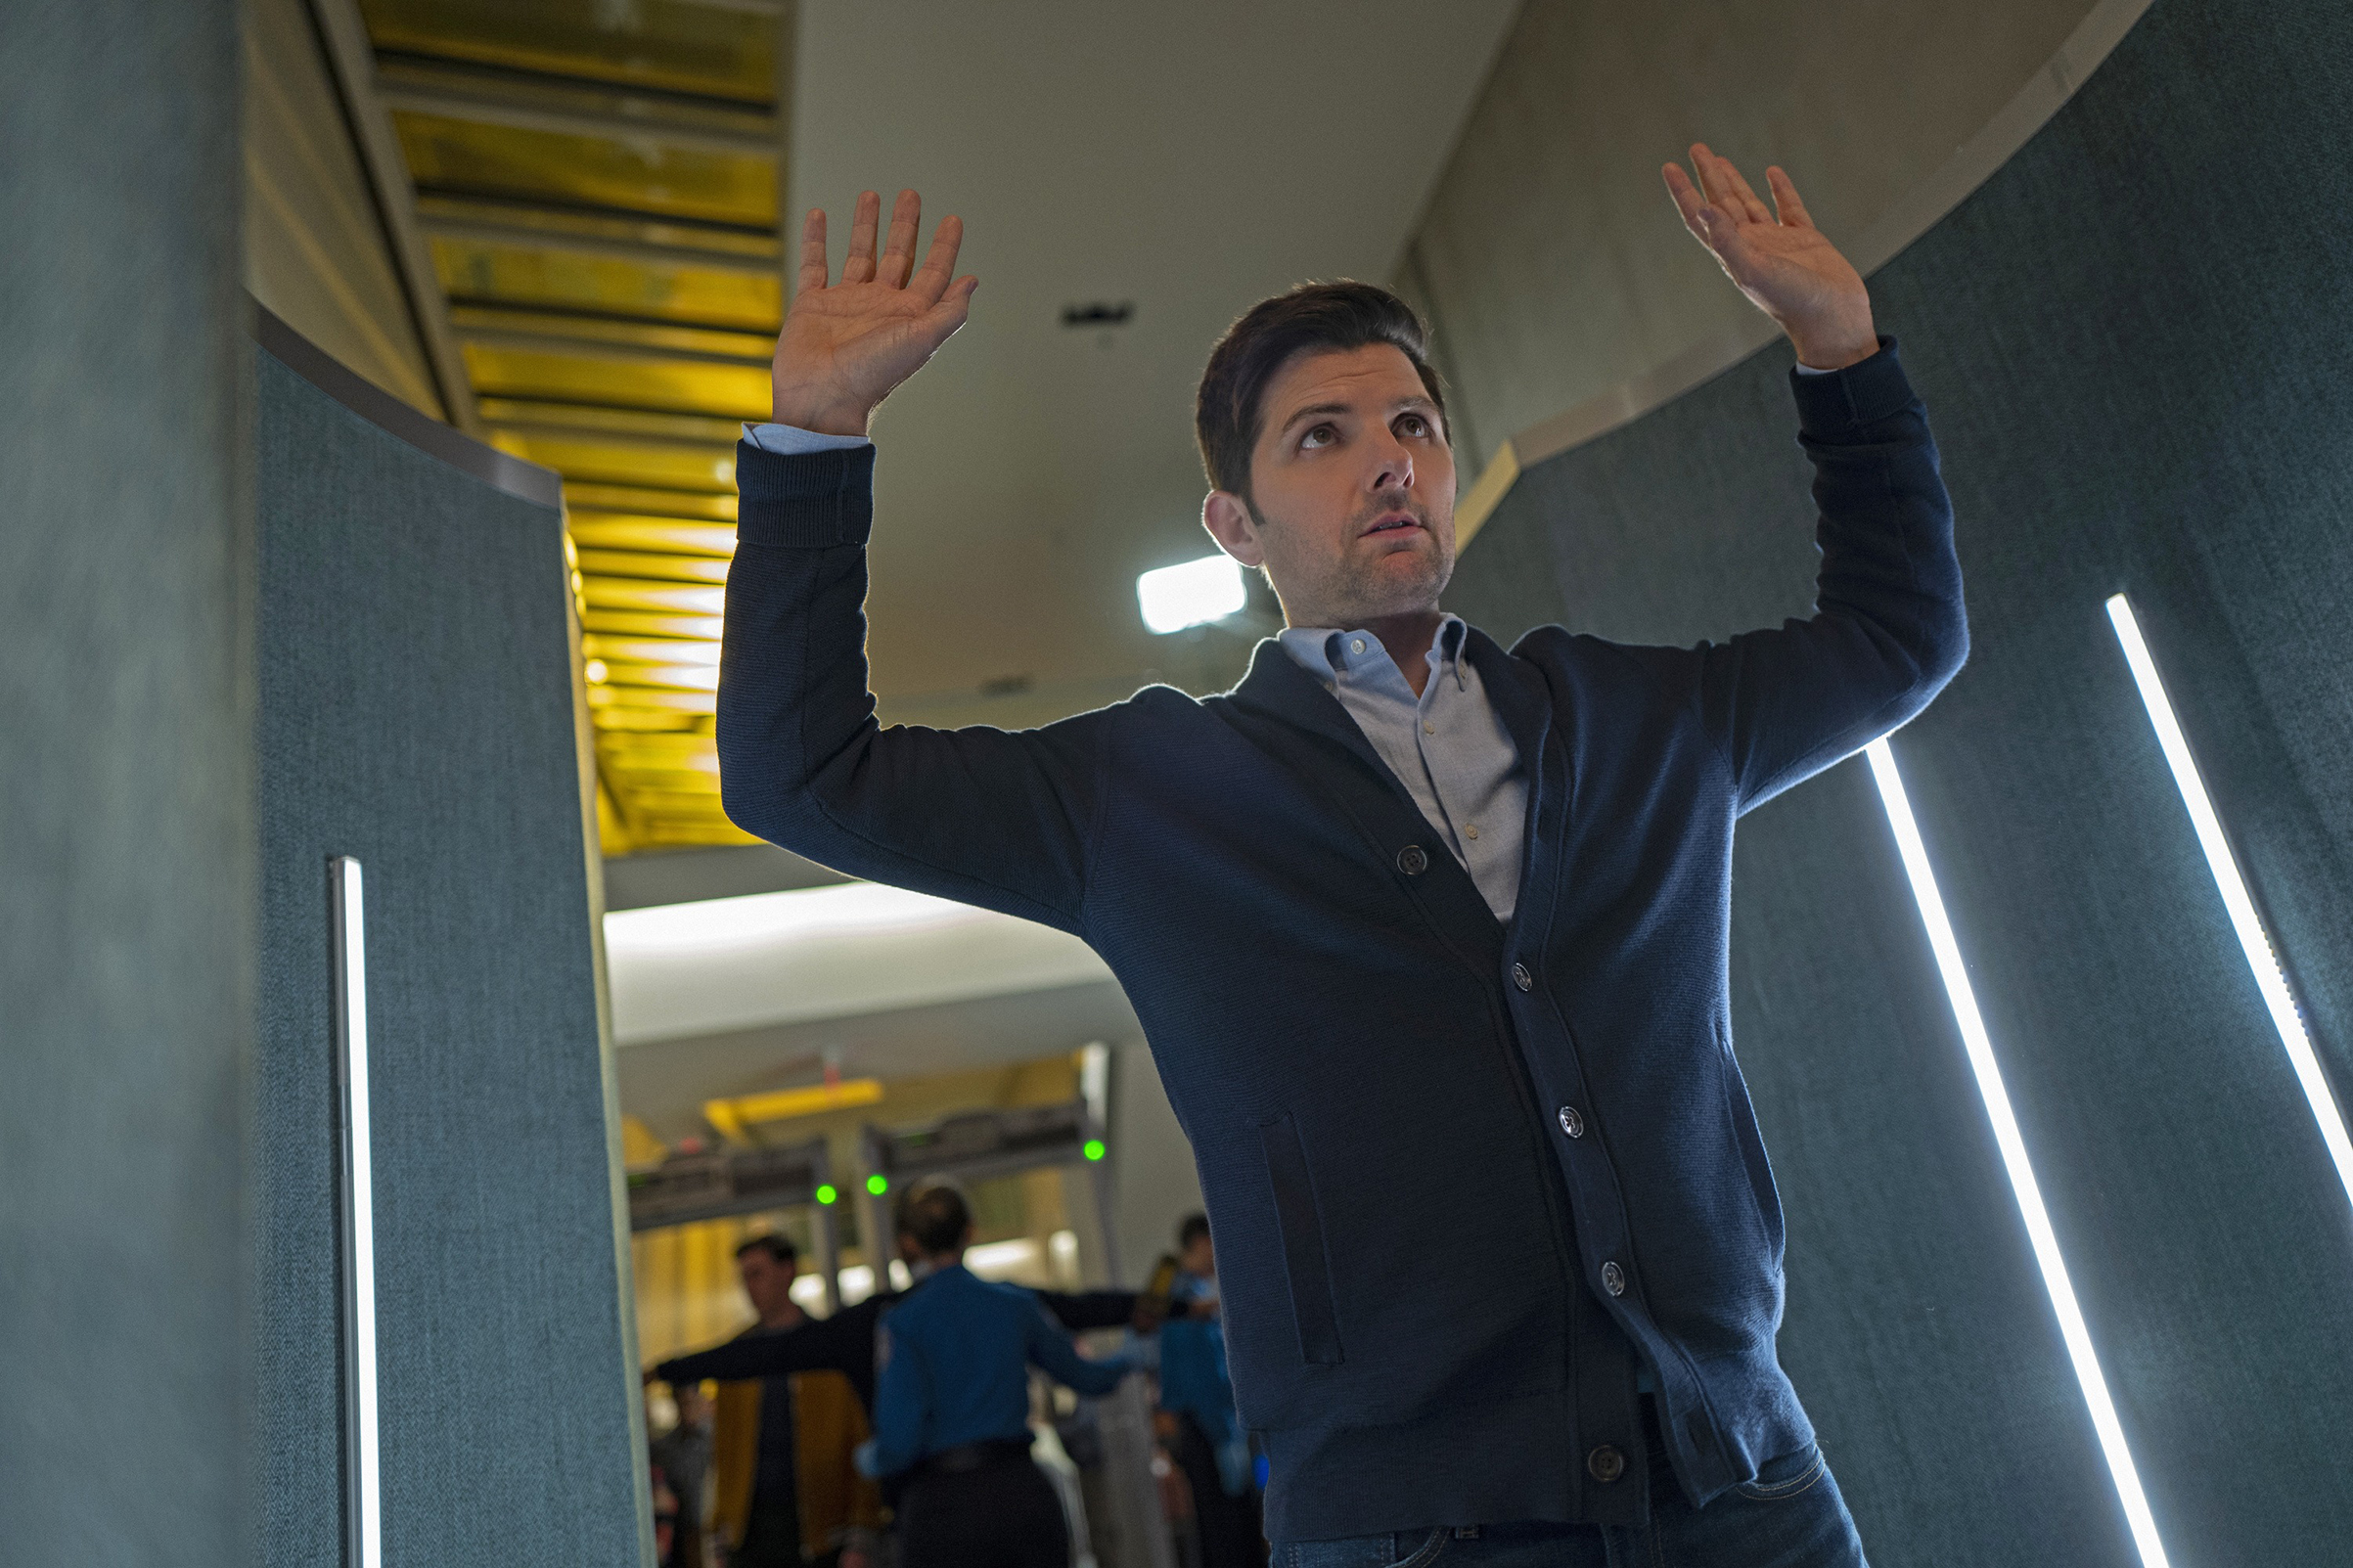 Adam Scott's journalist struggles to discern what's real and what's not